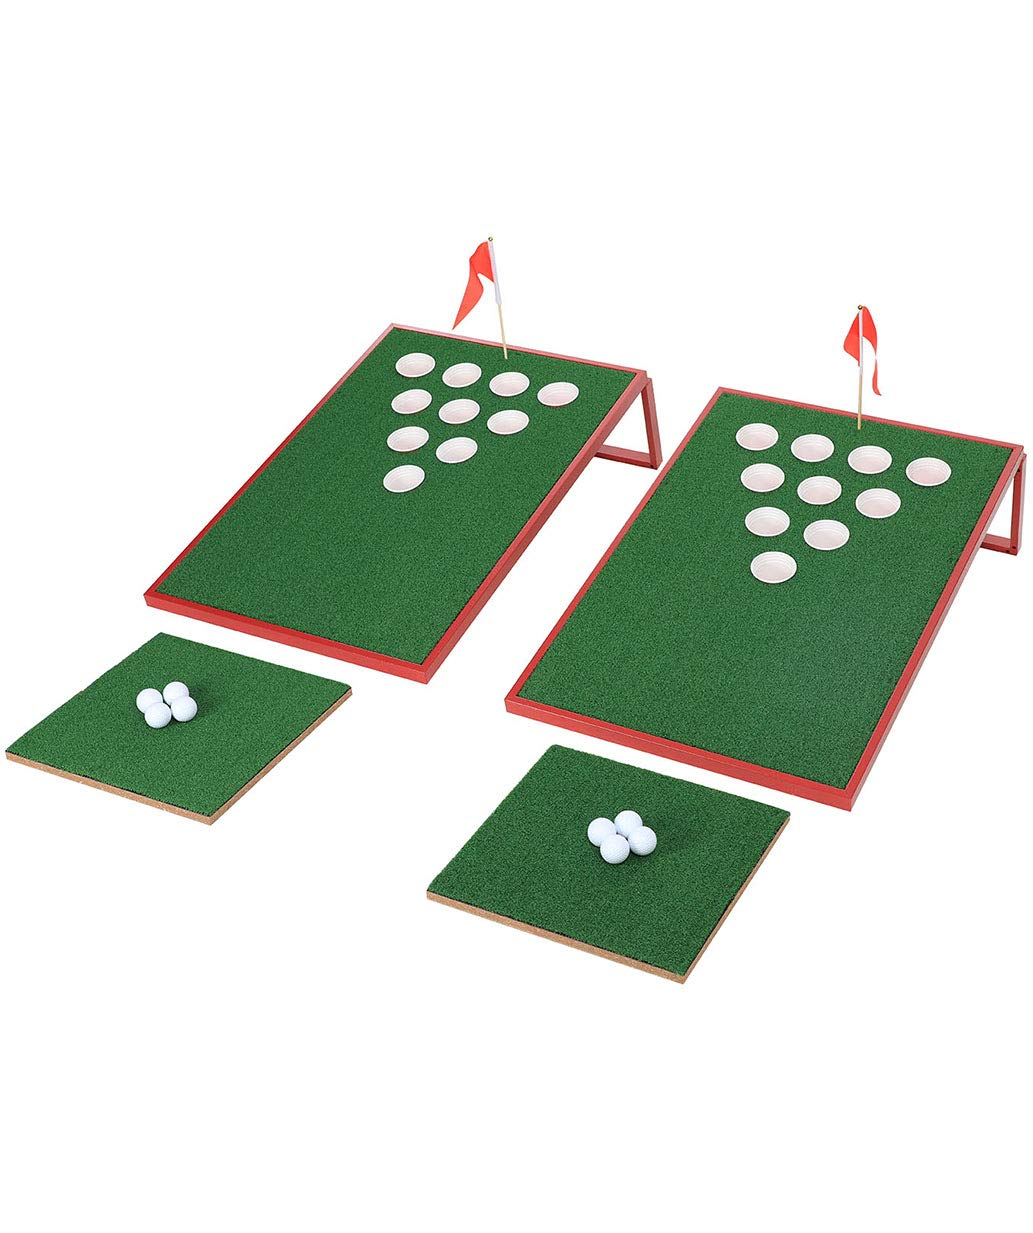 SPRAWL Portable Golf Beer Pong Game Set with 2 Chipping Boards, 2 Chipping Mats, 8 Golf Balls Cornhole Sets Tailgate Backyard Beach Office Games